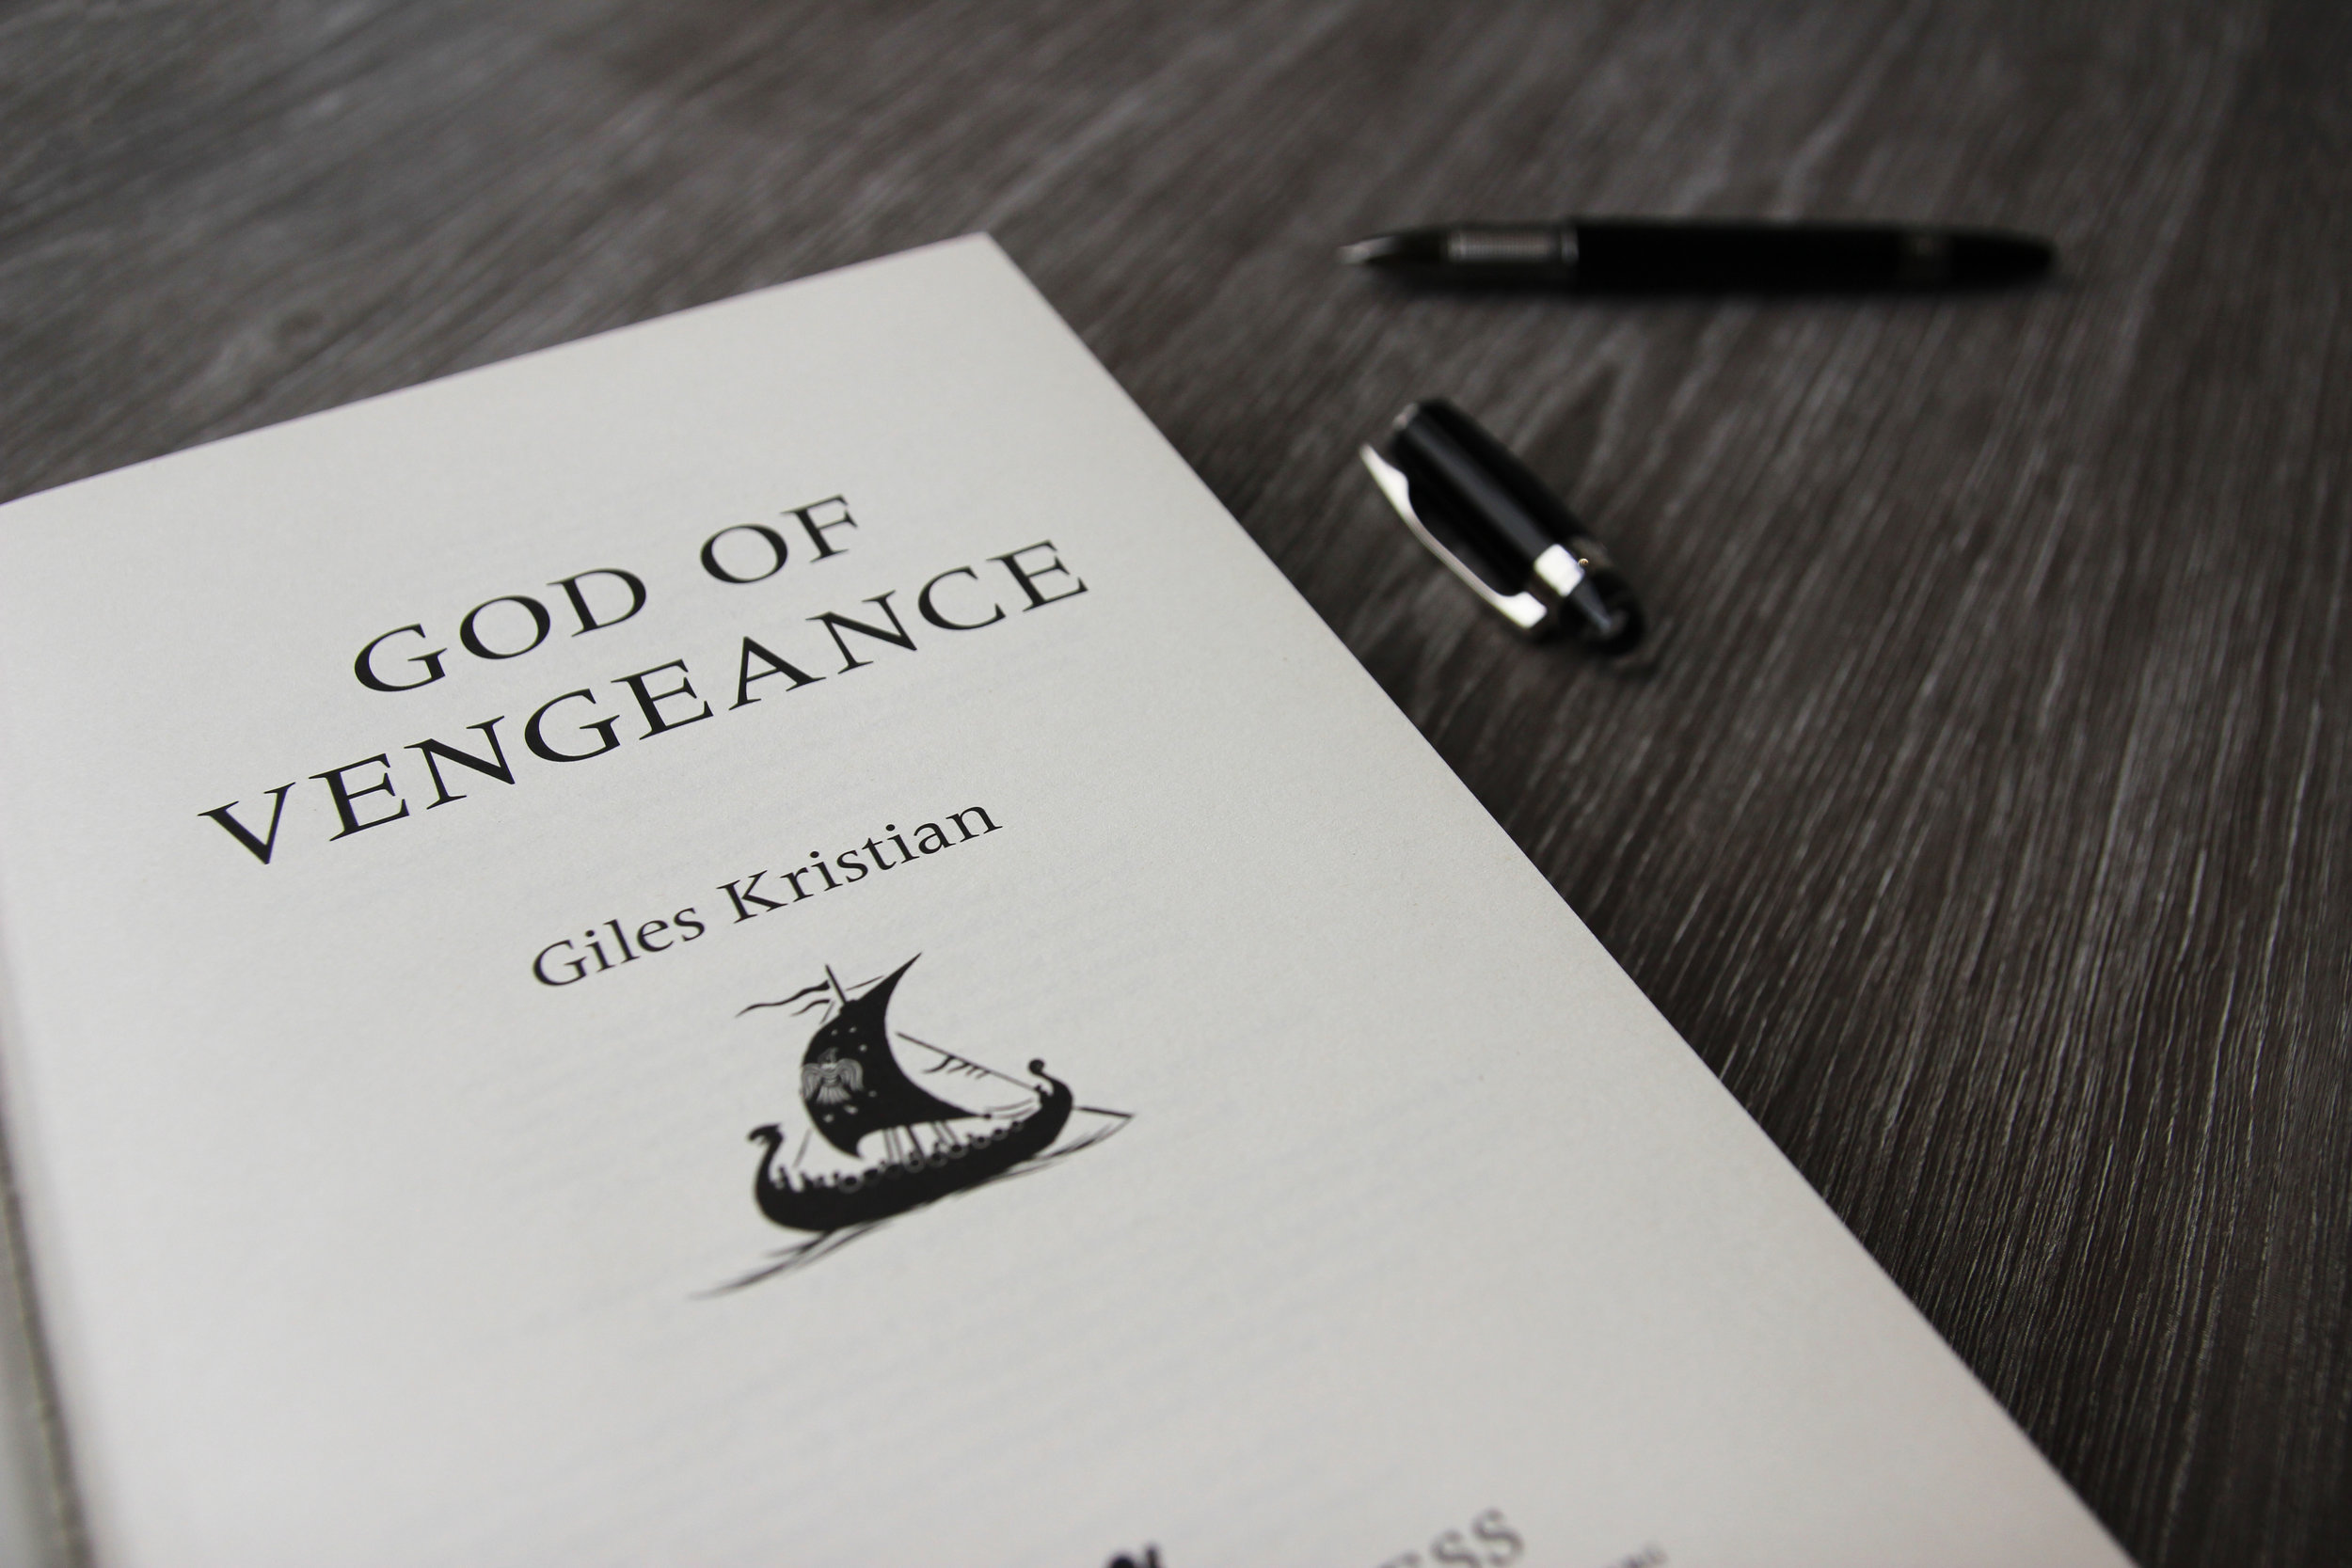 Signed copy of God of Vengeance By Giles Kristian